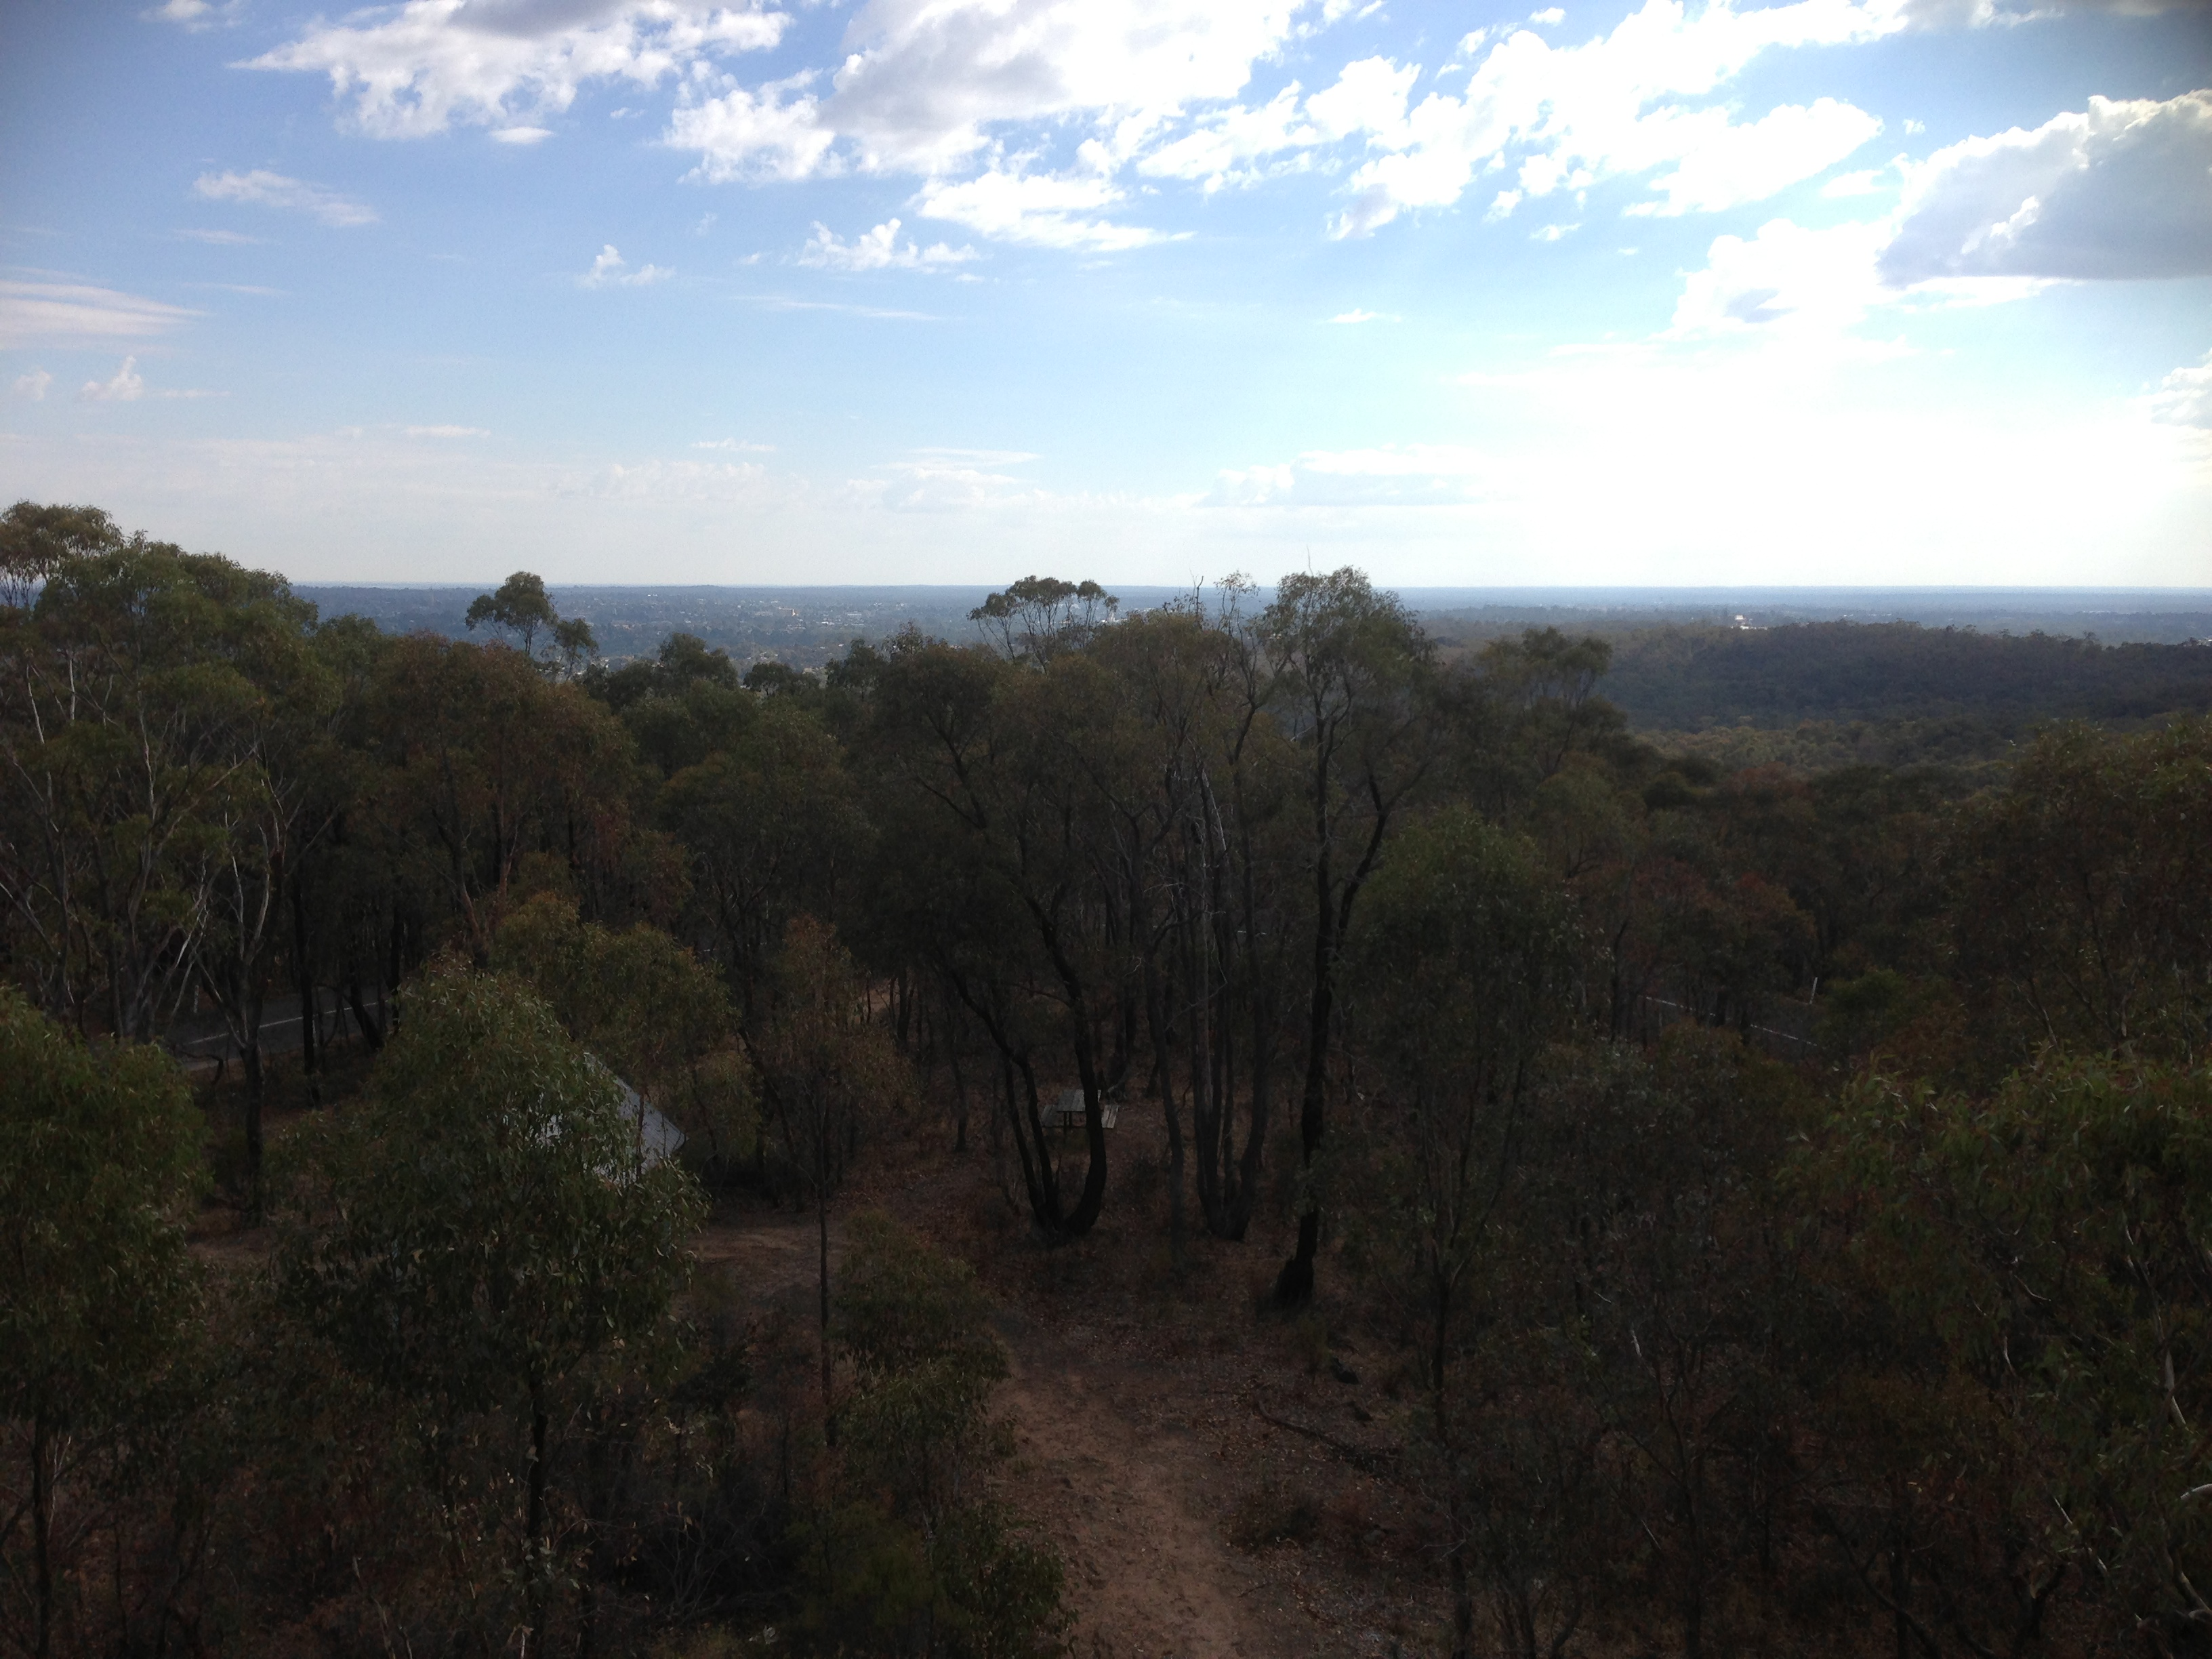 View from the top of One Tree Hill Tower